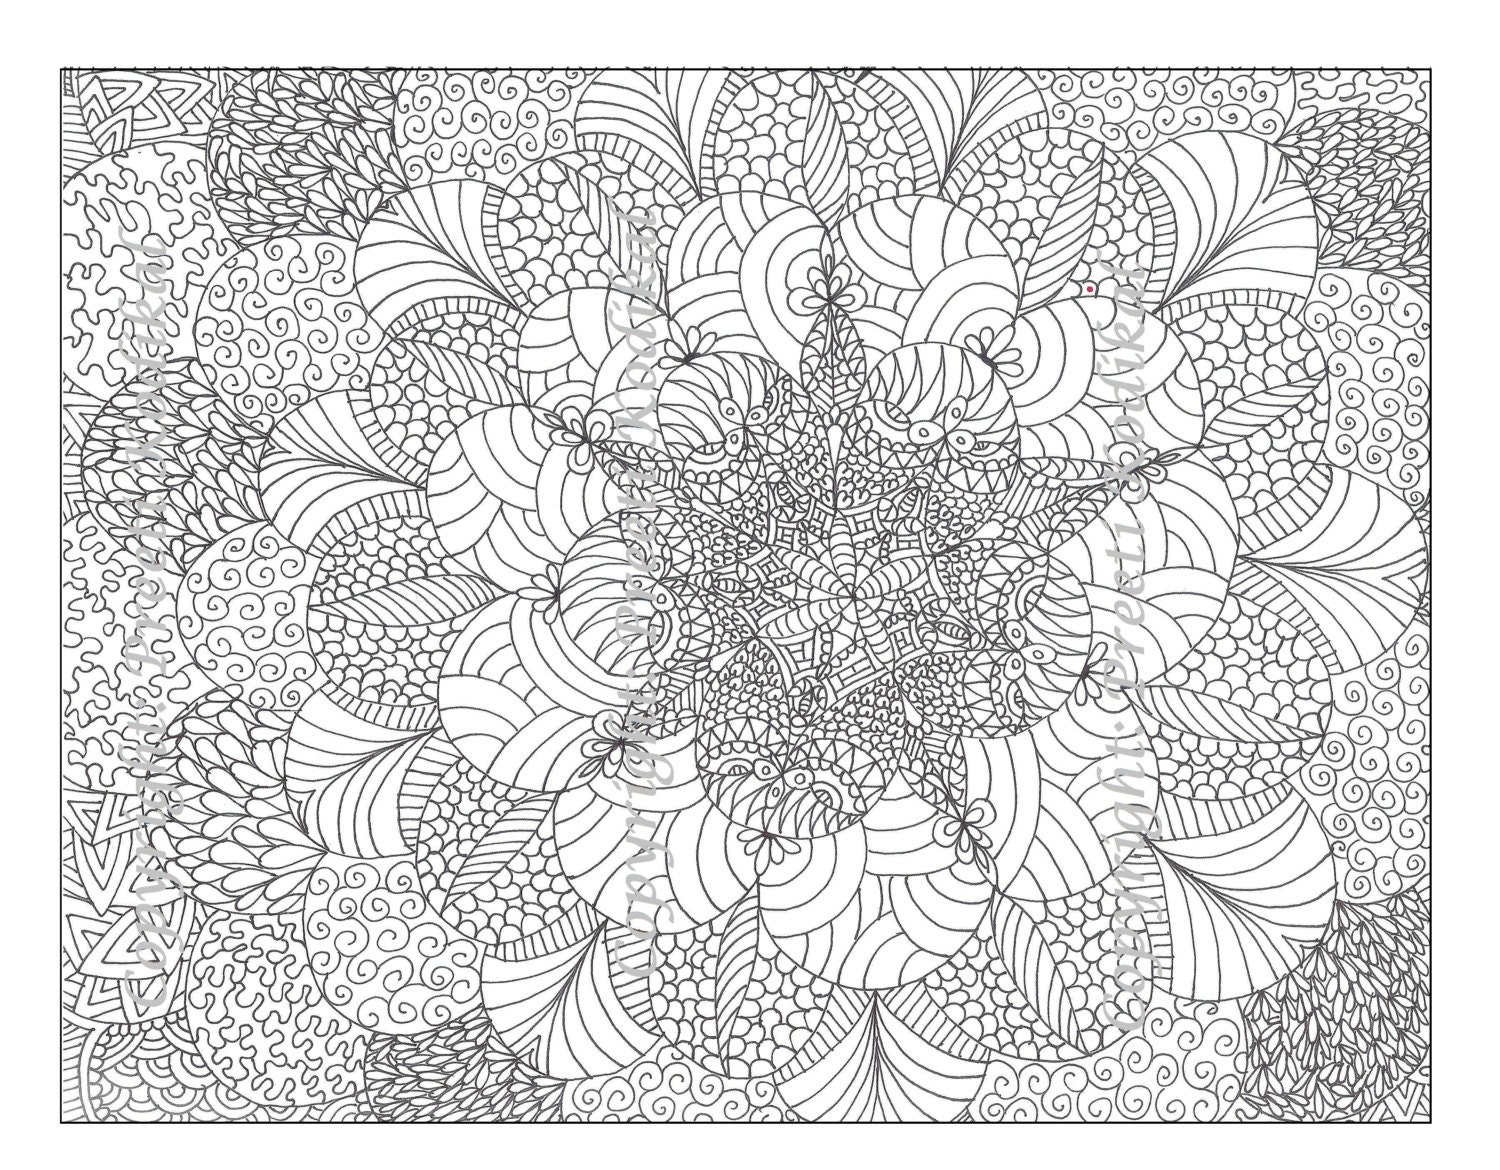 zoom - Mehndi Patterns Colouring Sheets